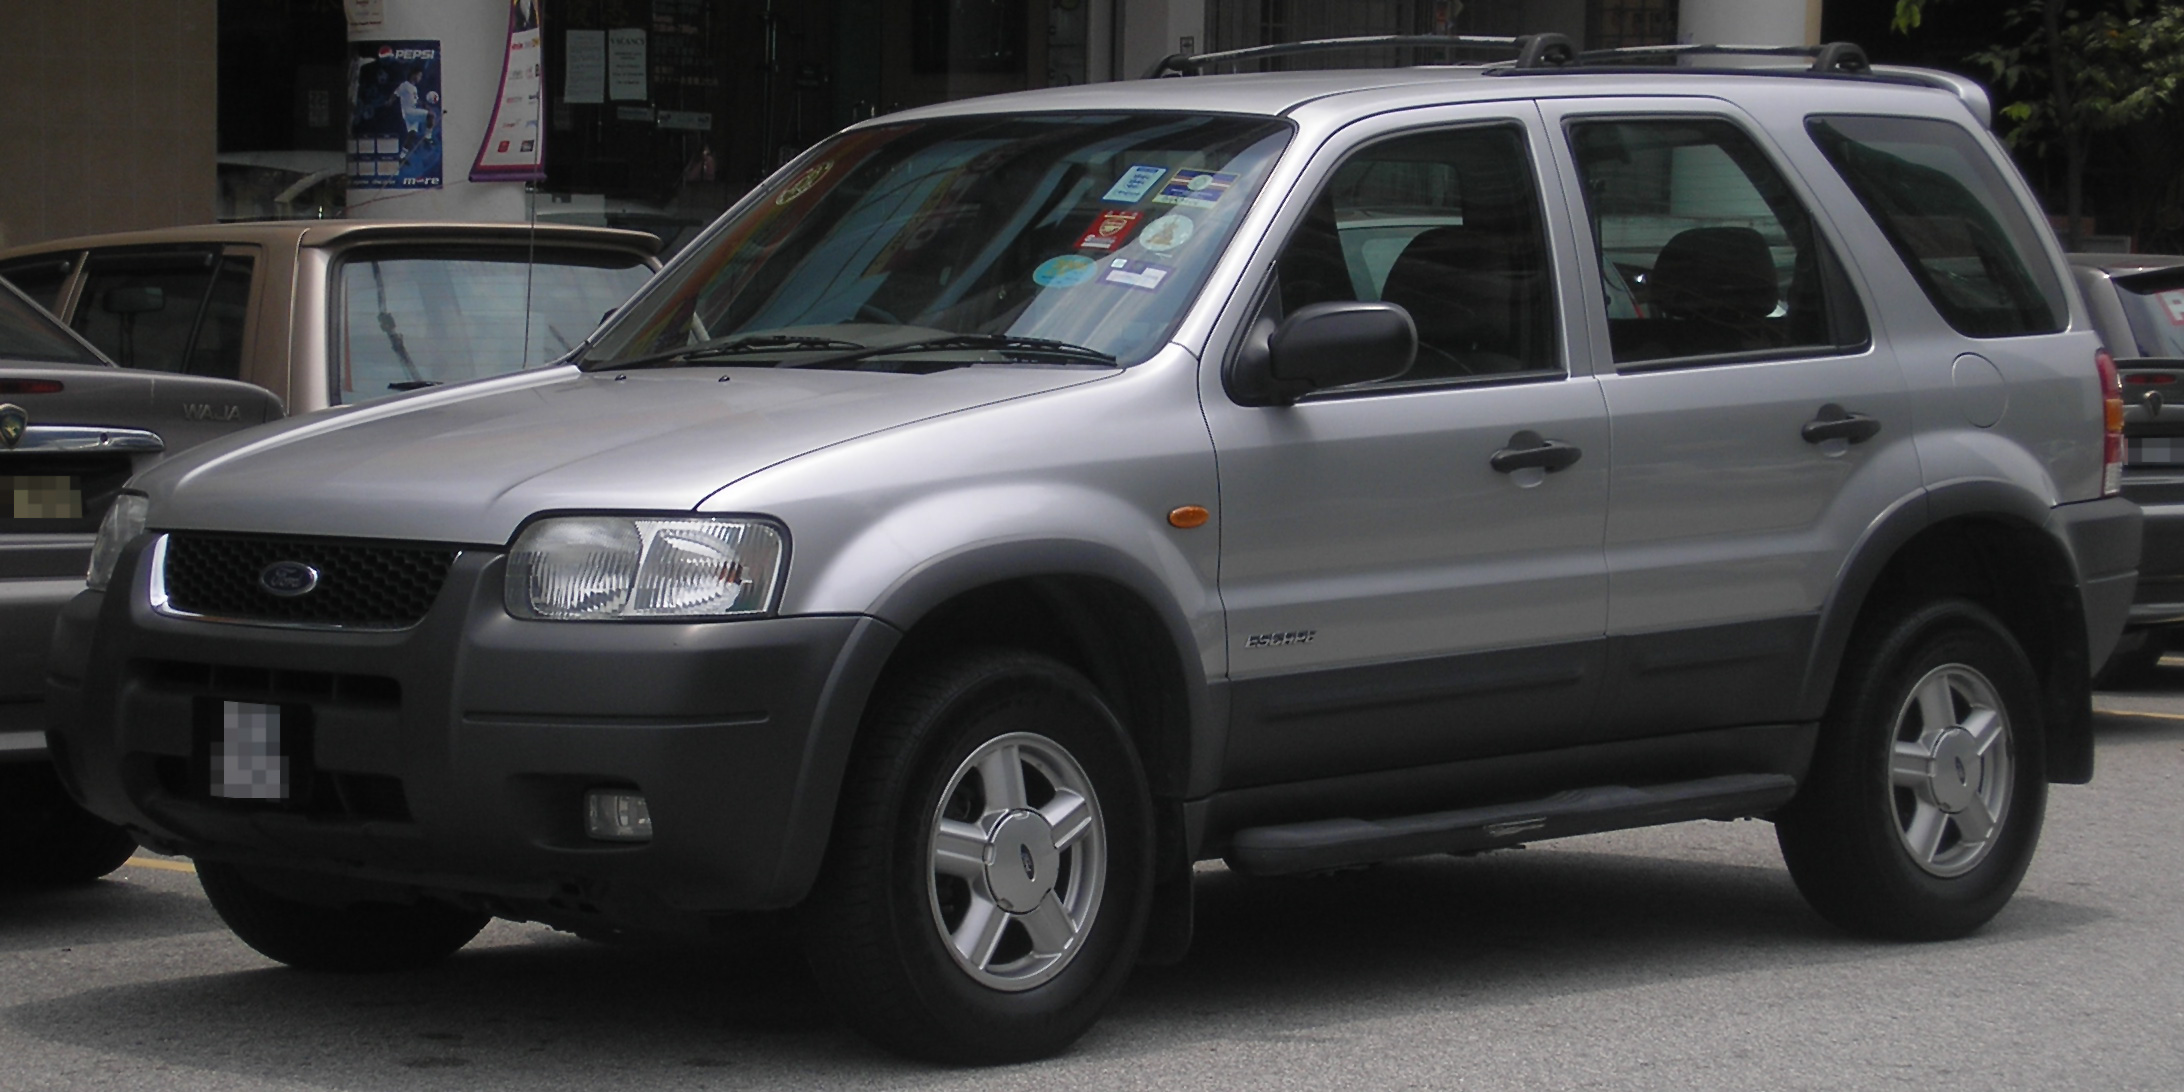 File:Ford Escape (first generation) (front), Serdang.jpg - Wikimedia Commons